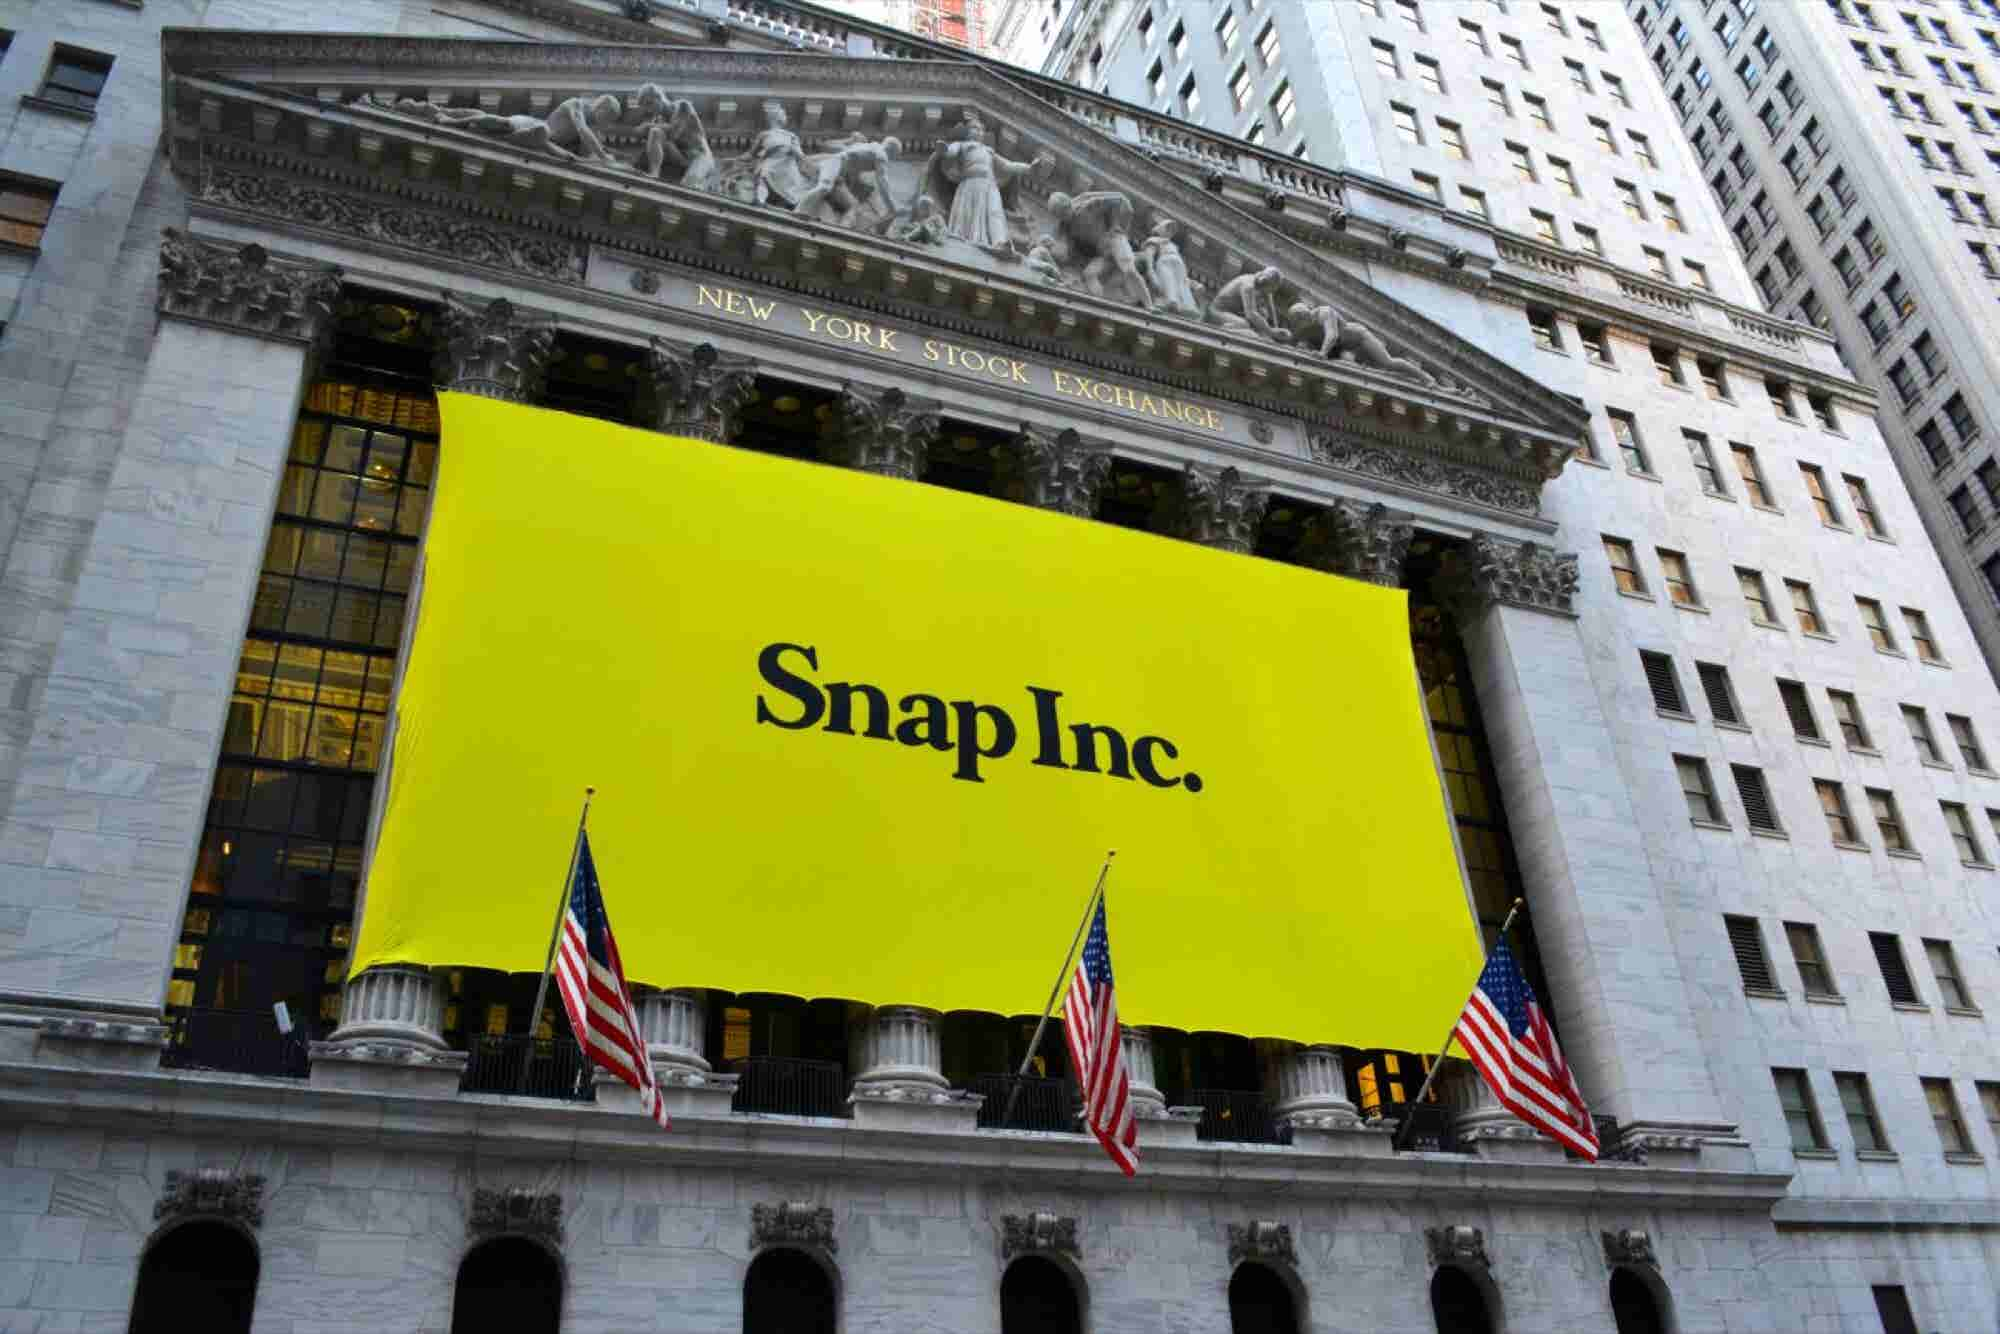 Even After Its Redesign, Snapchat Is Struggling to Add New Users